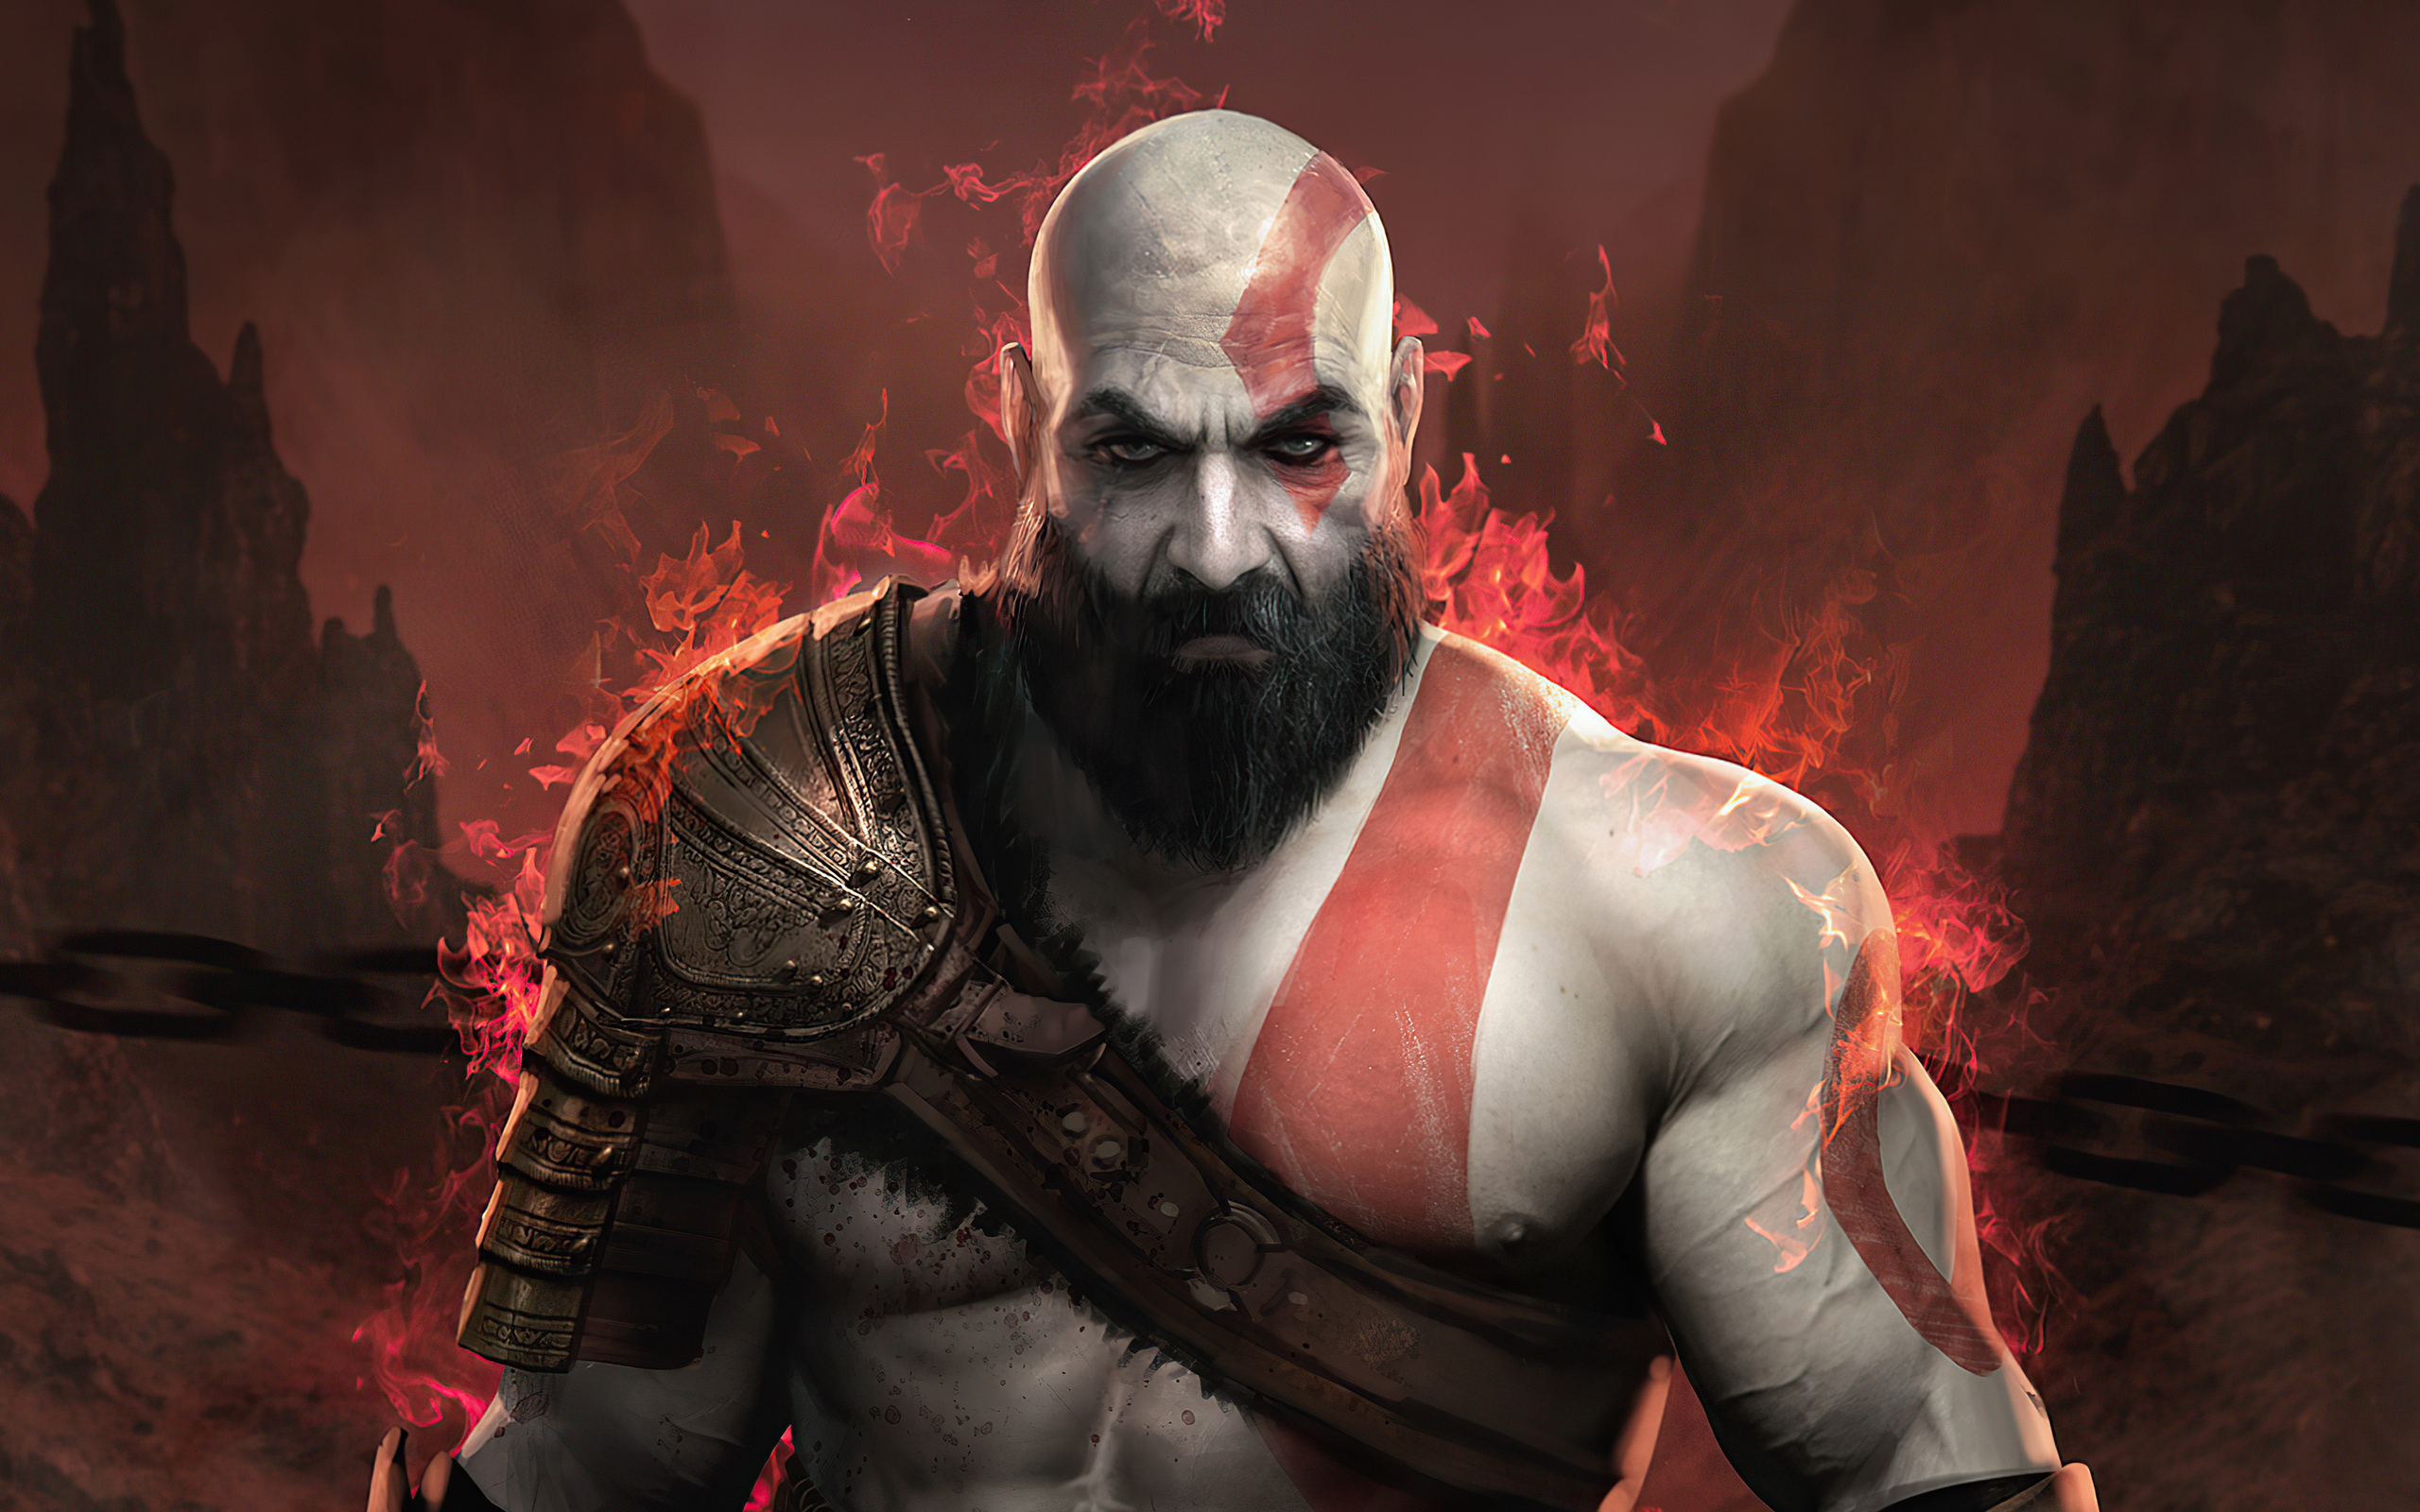 kratos-god-of-war-4-2020-4k-2w.jpg